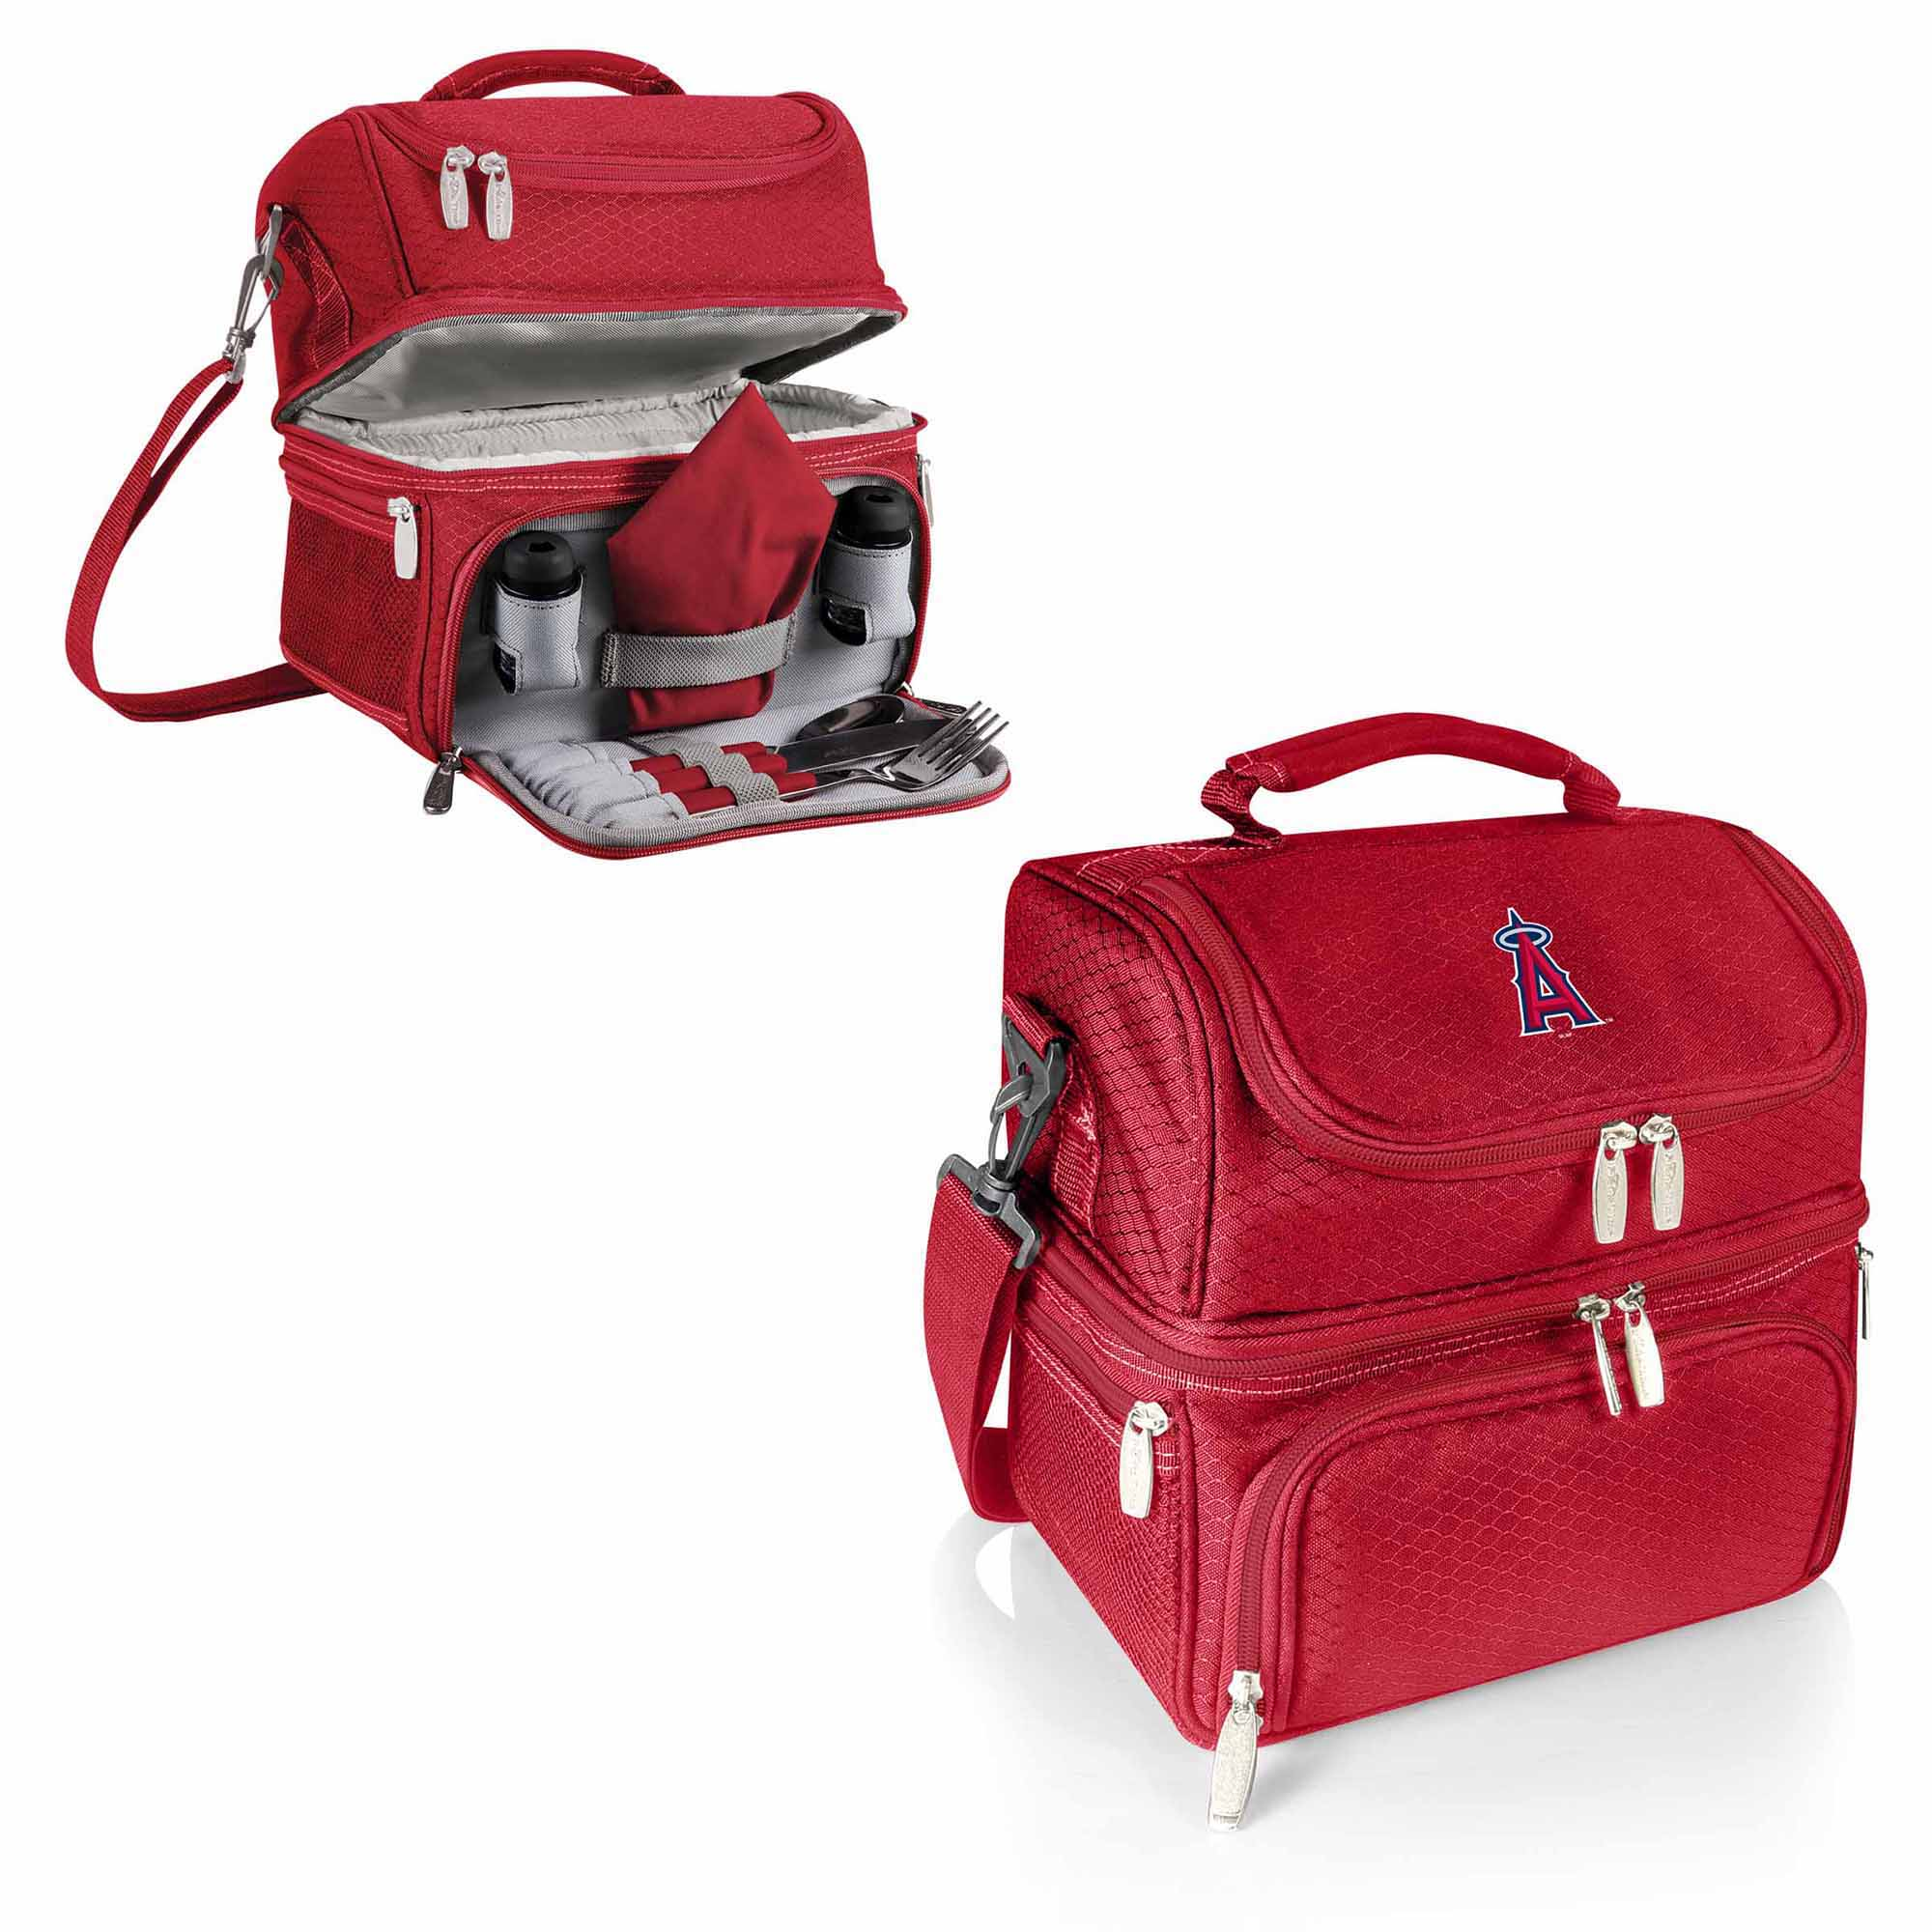 Los Angeles Angels Pranzo Lunch Tote - Red - No Size